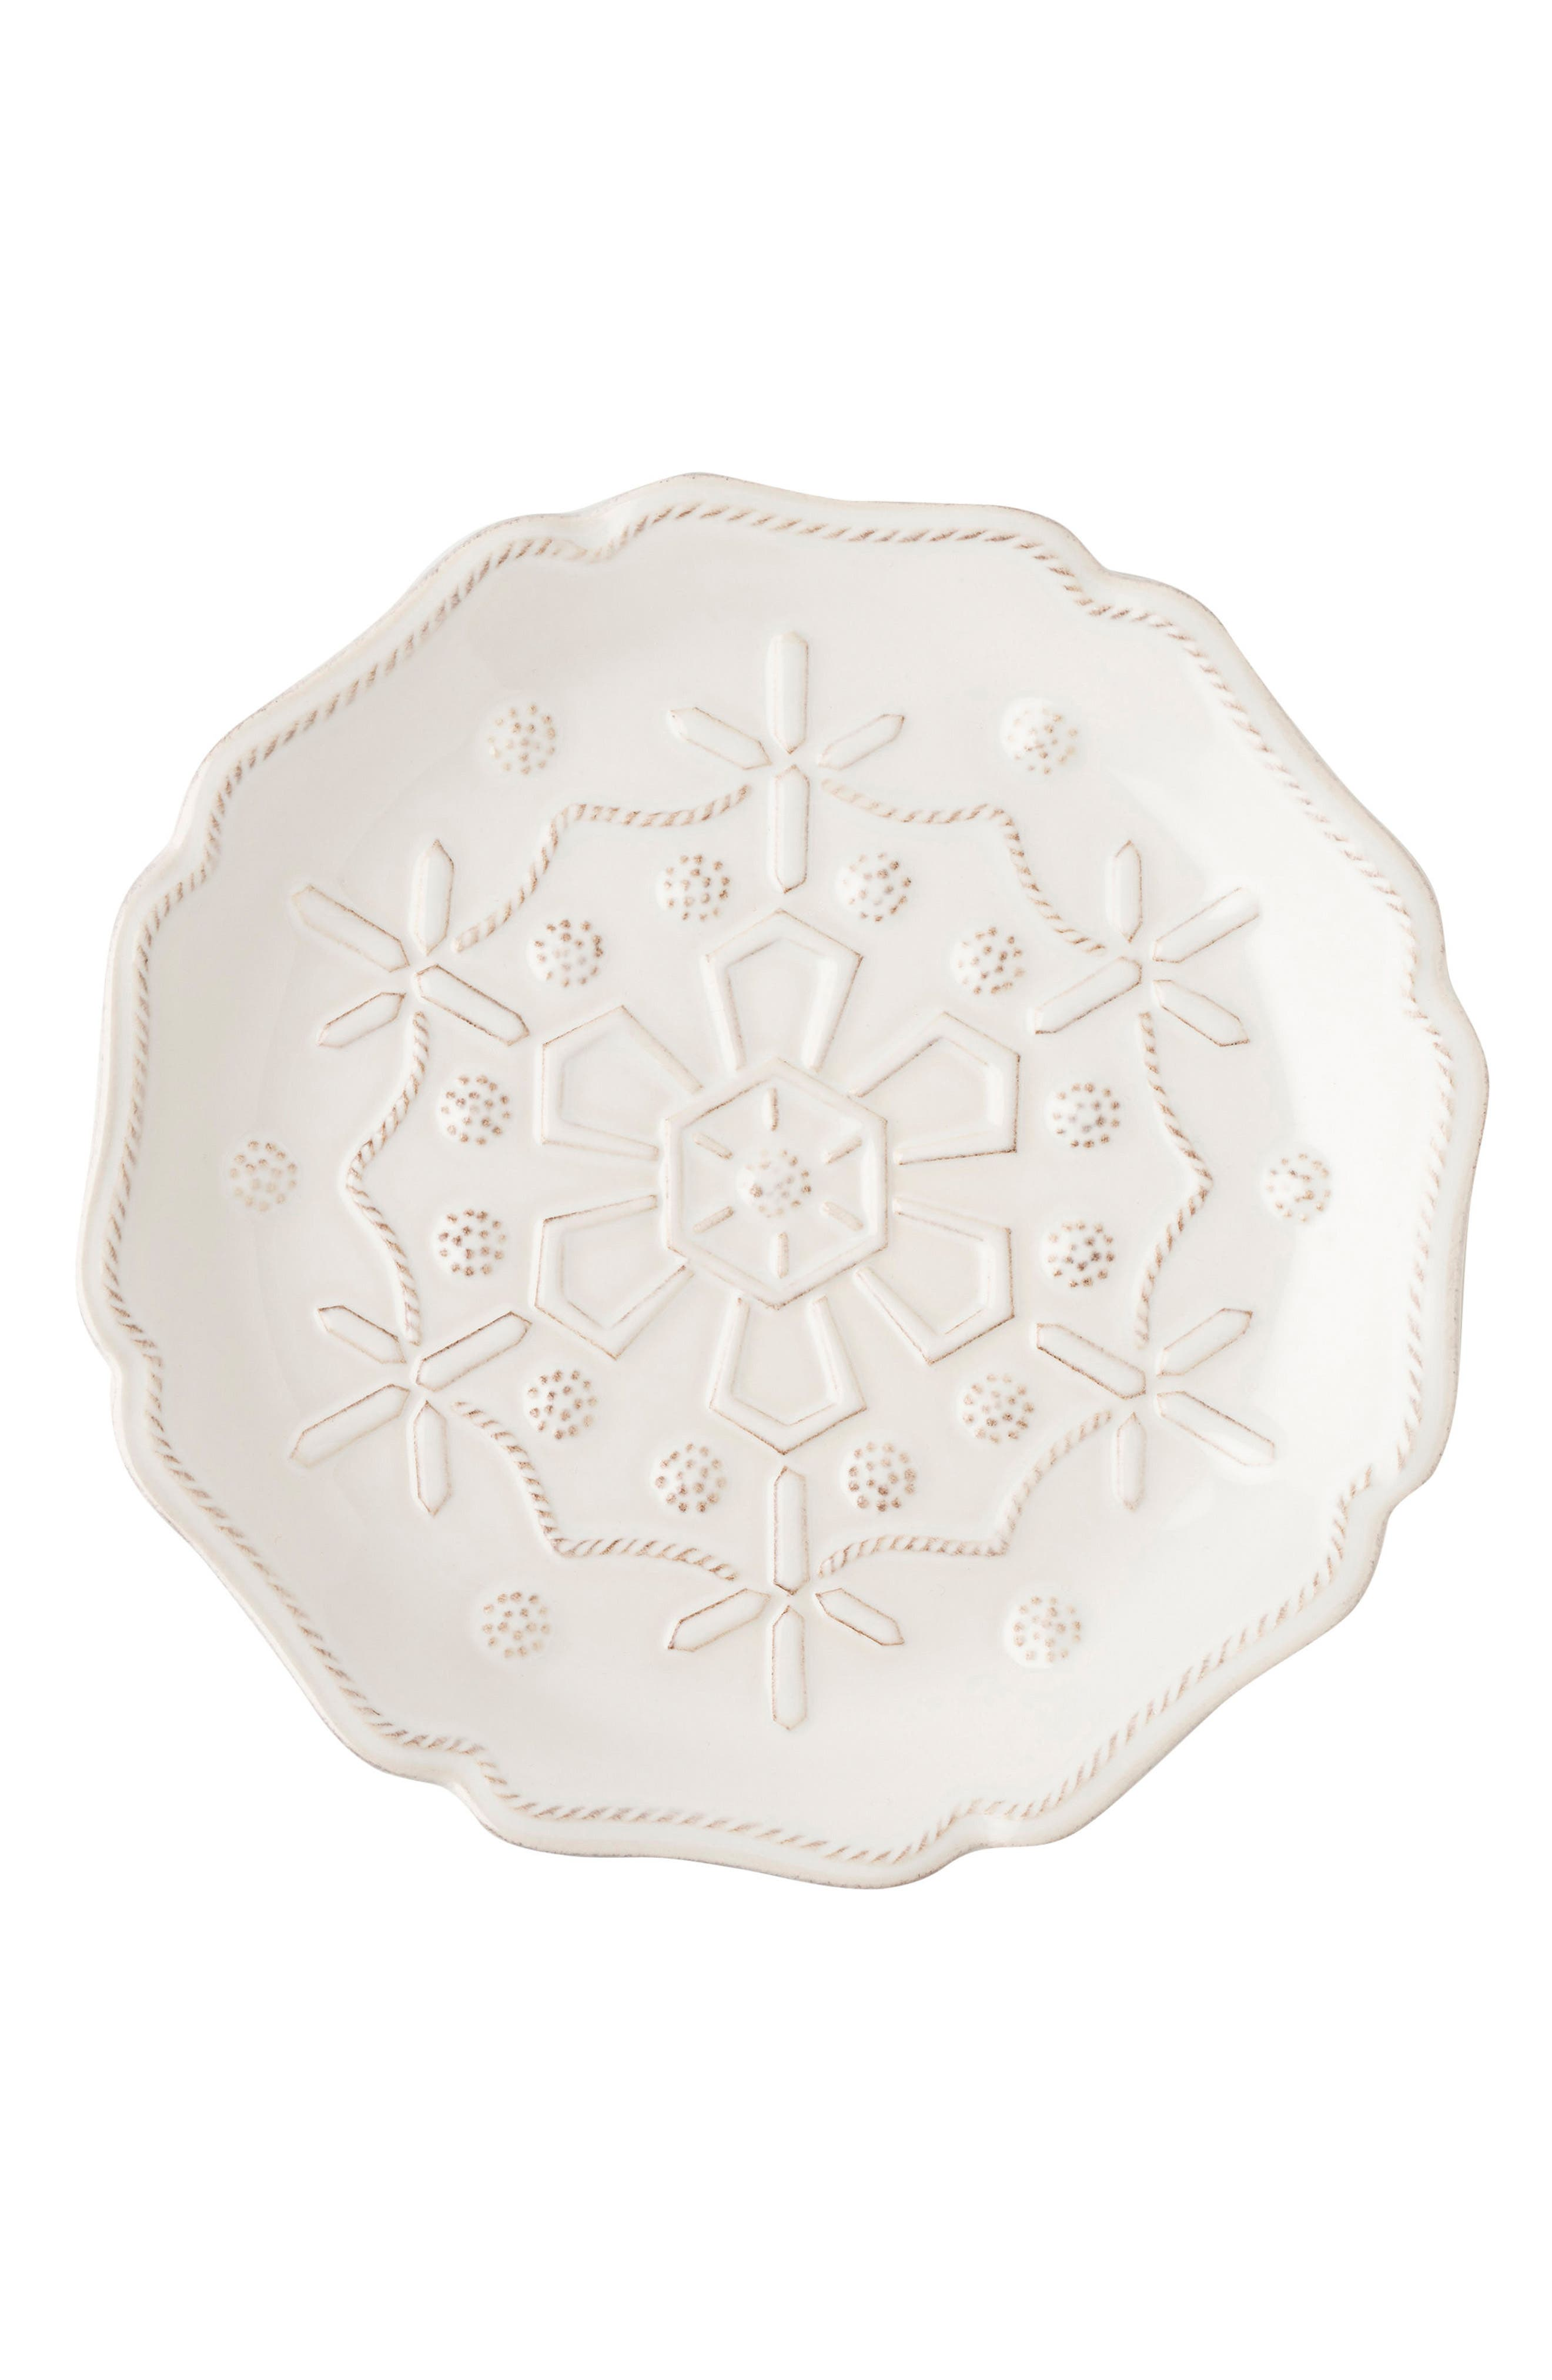 Snowfall Whitewash Set of 4 Ceramic Tidbit Plates,                             Alternate thumbnail 5, color,                             100